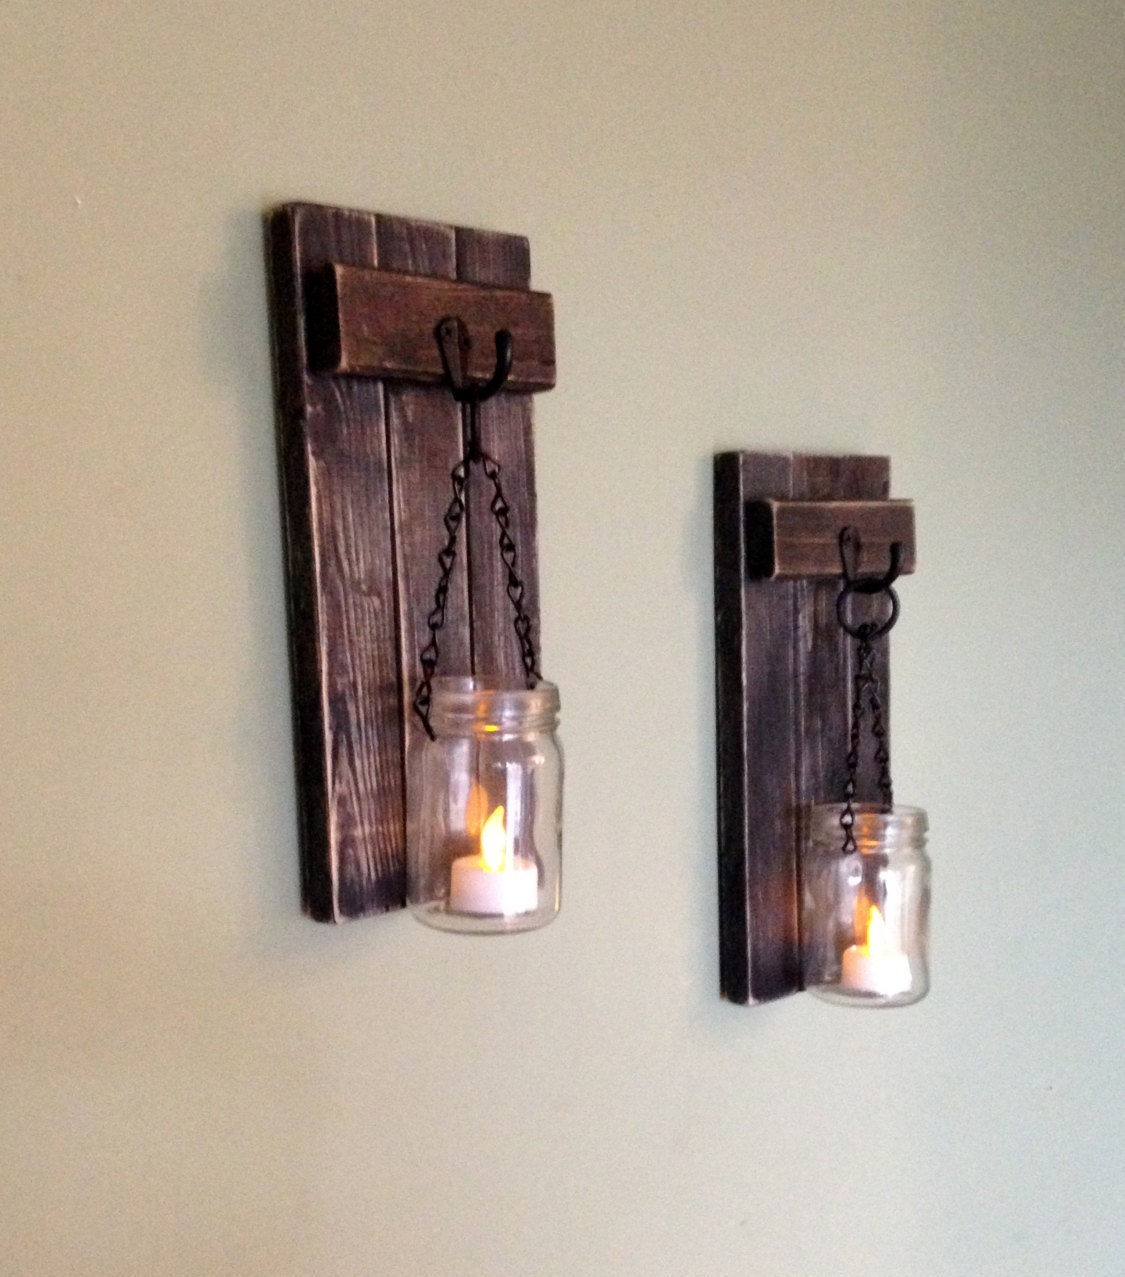 Rustic Wall Sconces For Candles : Rustic Wall Decor Wall Sconce Wooden Sconce Wooden Candle